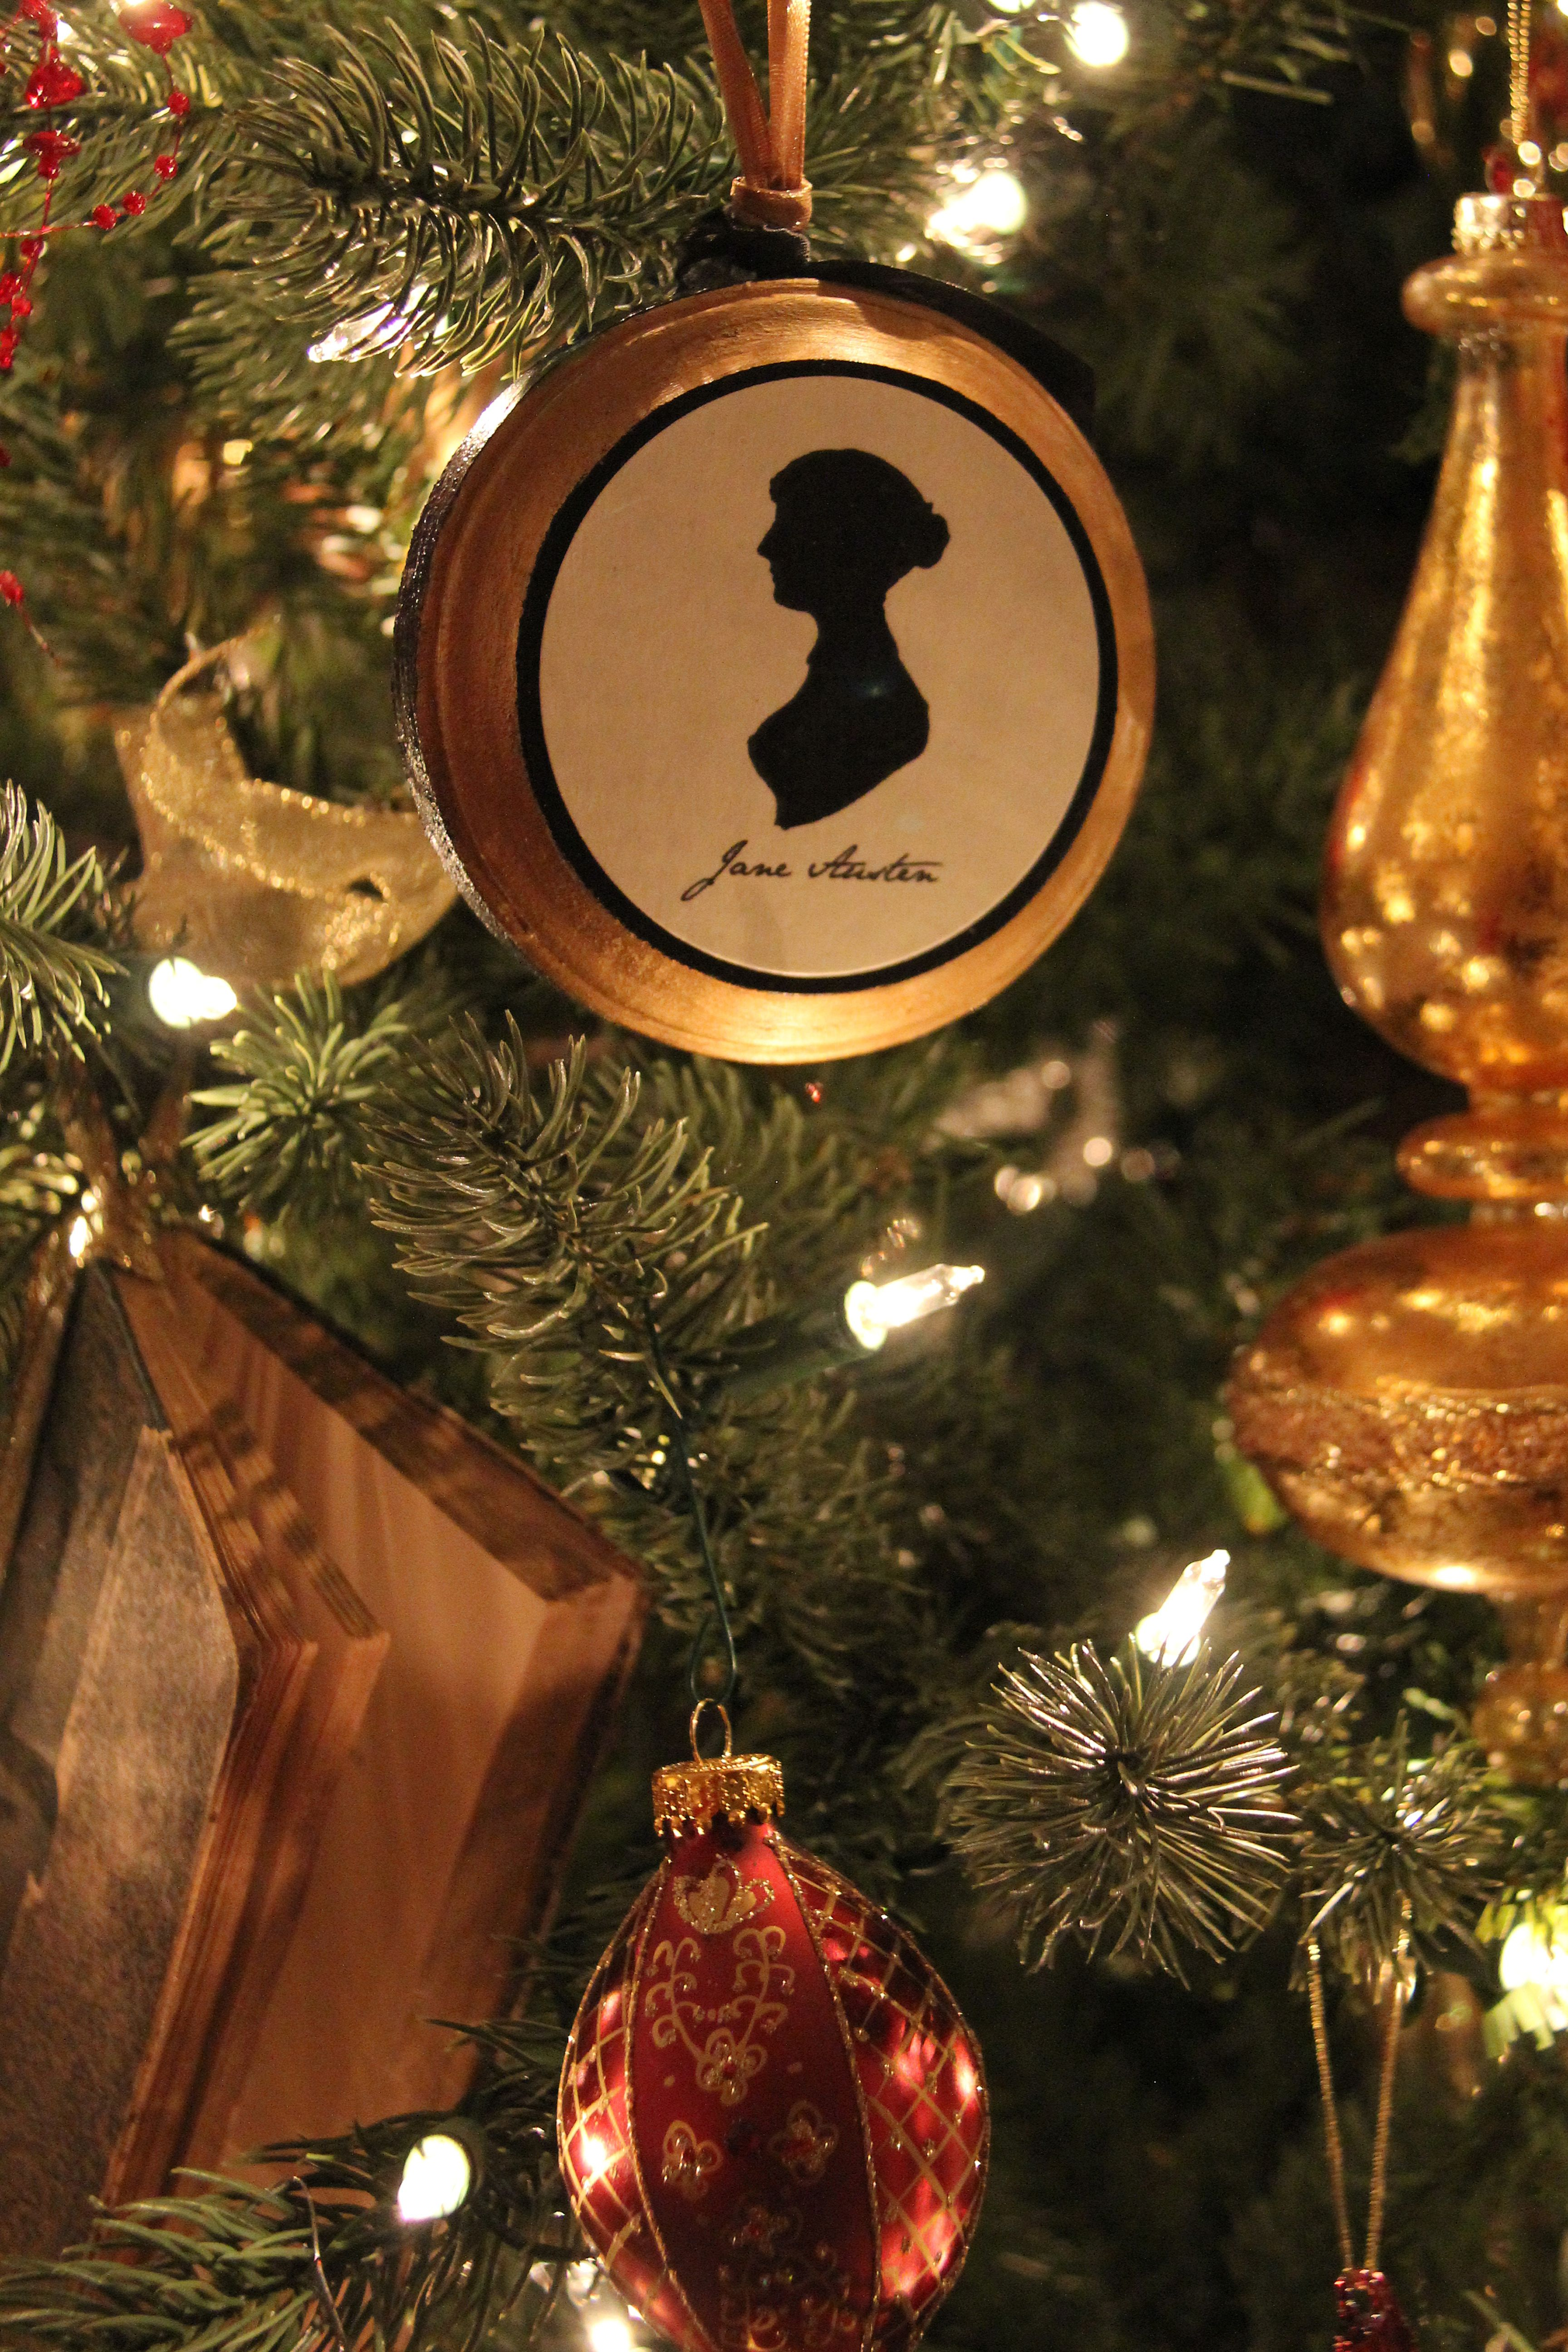 Jane Austen ornament miniature made for my 2013 book themed